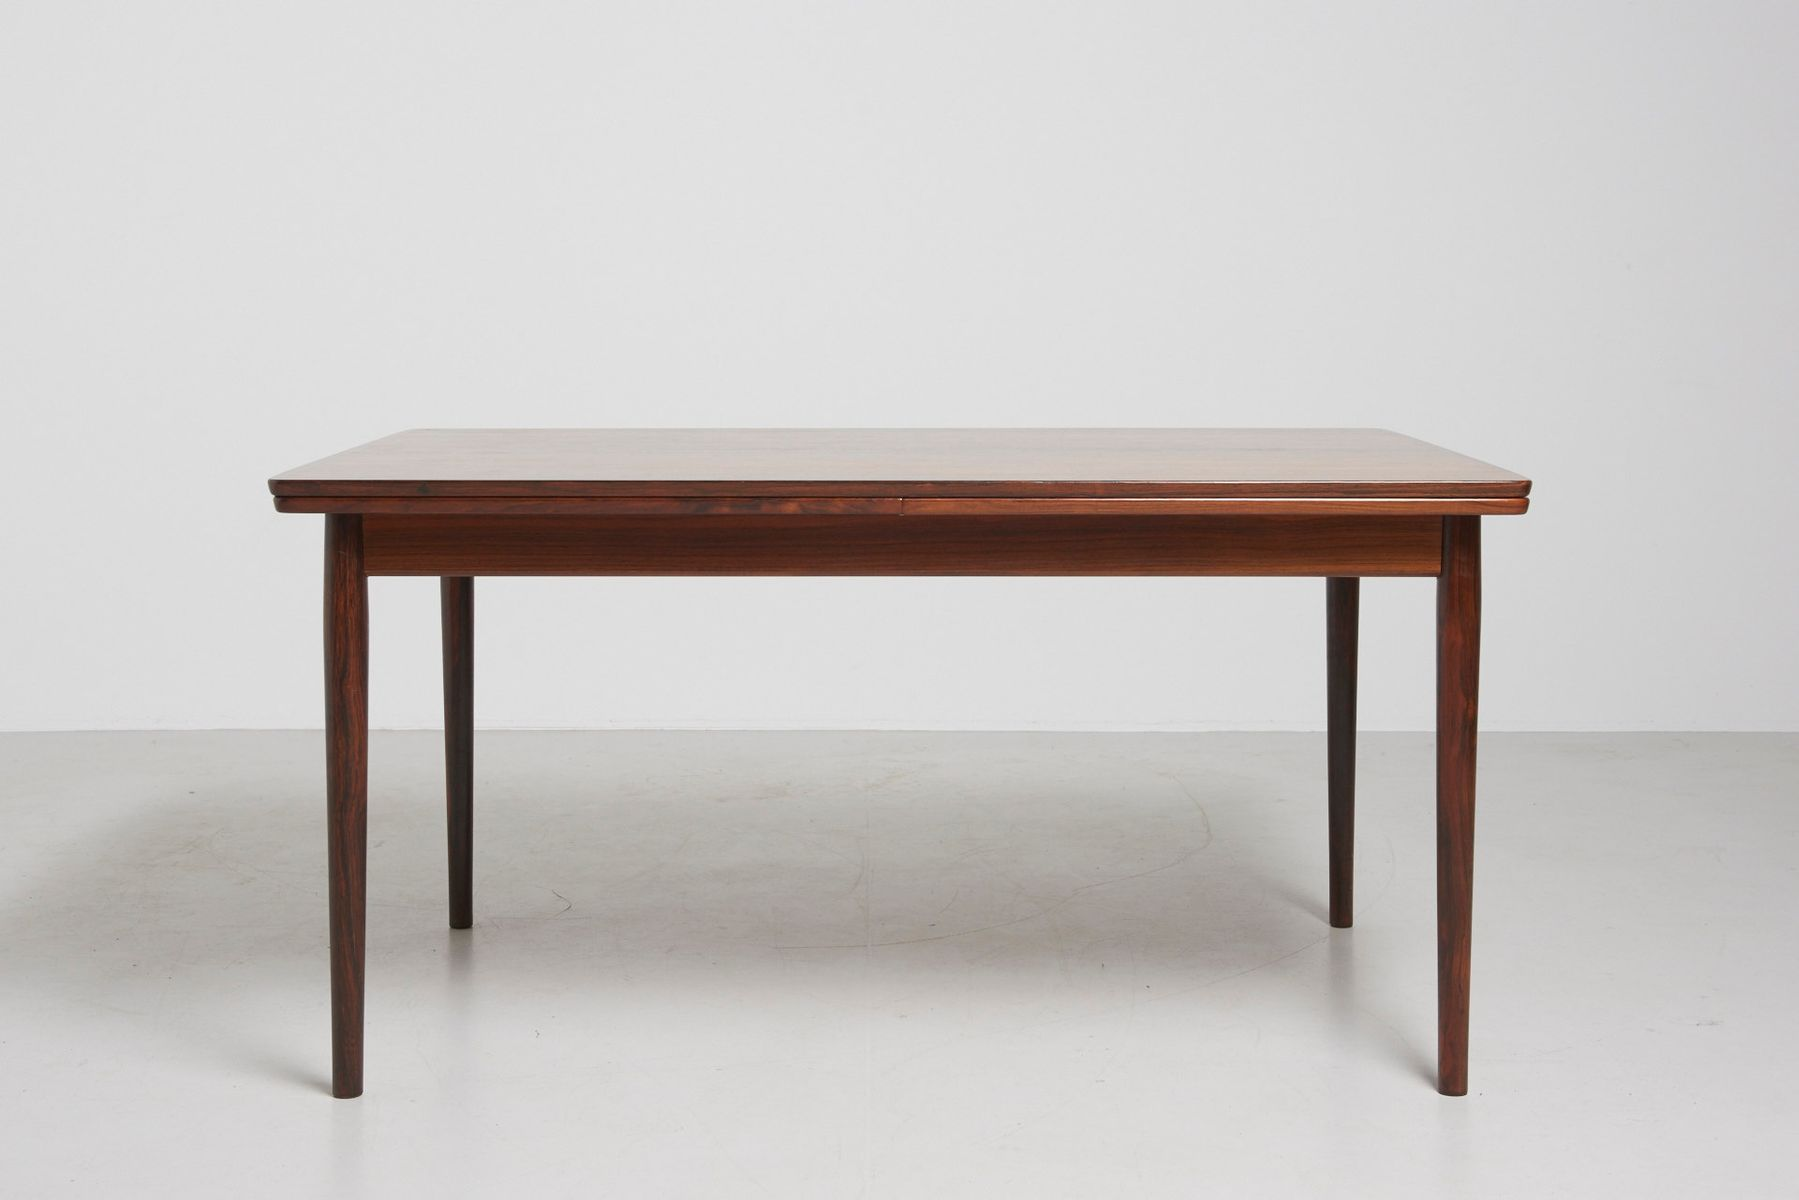 Danish Dining Table by Arne Vodder for Sibast 1960s for sale at